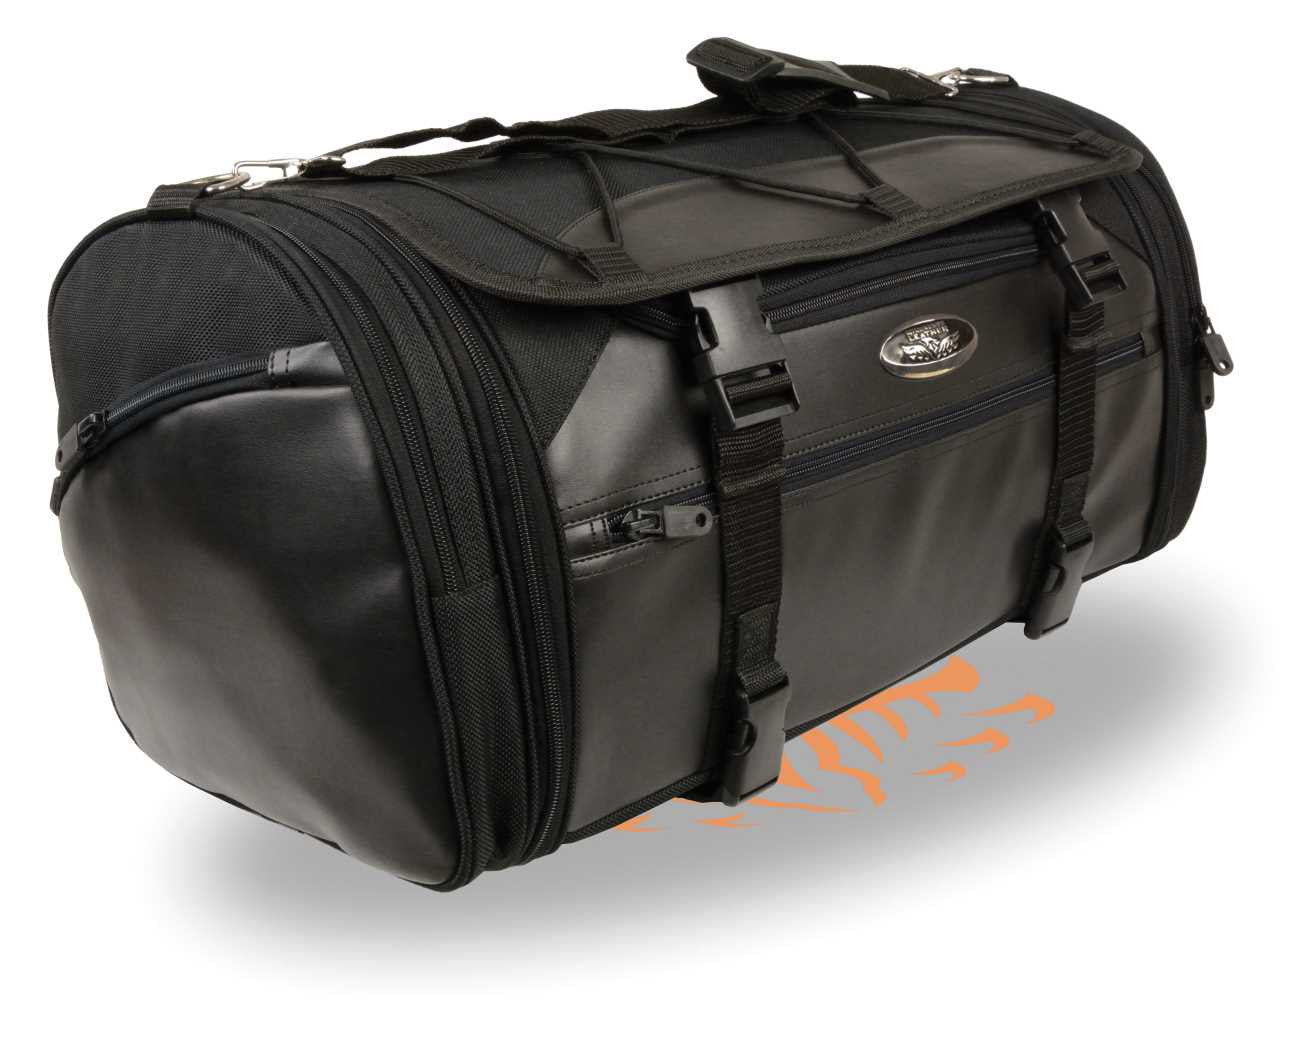 NYLON SISSY T BAR BAG TRAVEL BAG PLAIN LUGGAGE